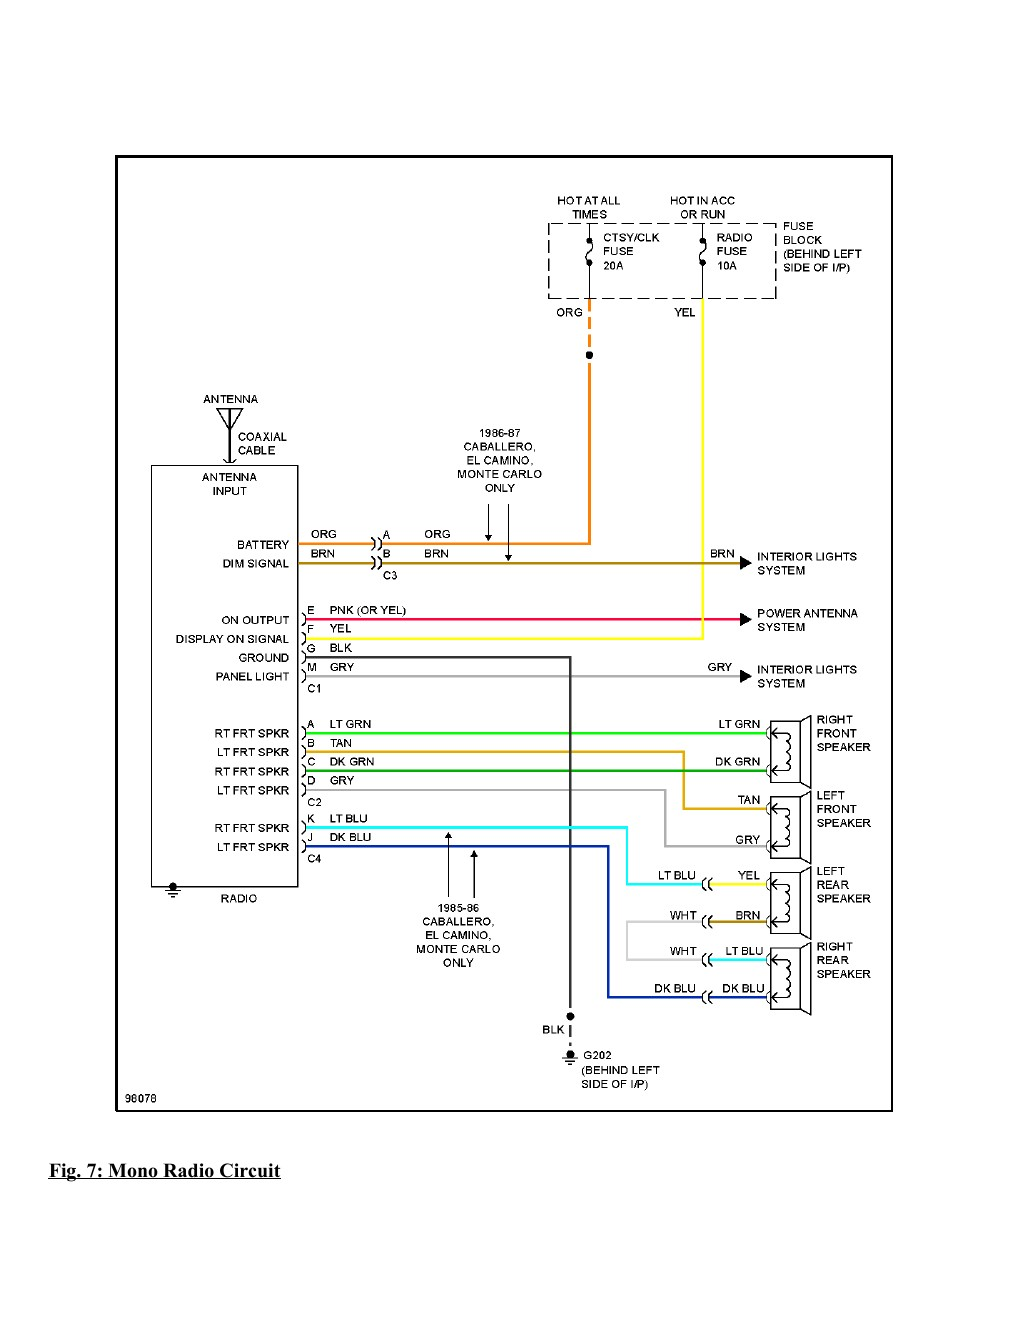 1995 chevrolet monte carlo ss complete wiring diagram part 1970 monte carlo wiring diagram 2002 monte [ 1020 x 1320 Pixel ]